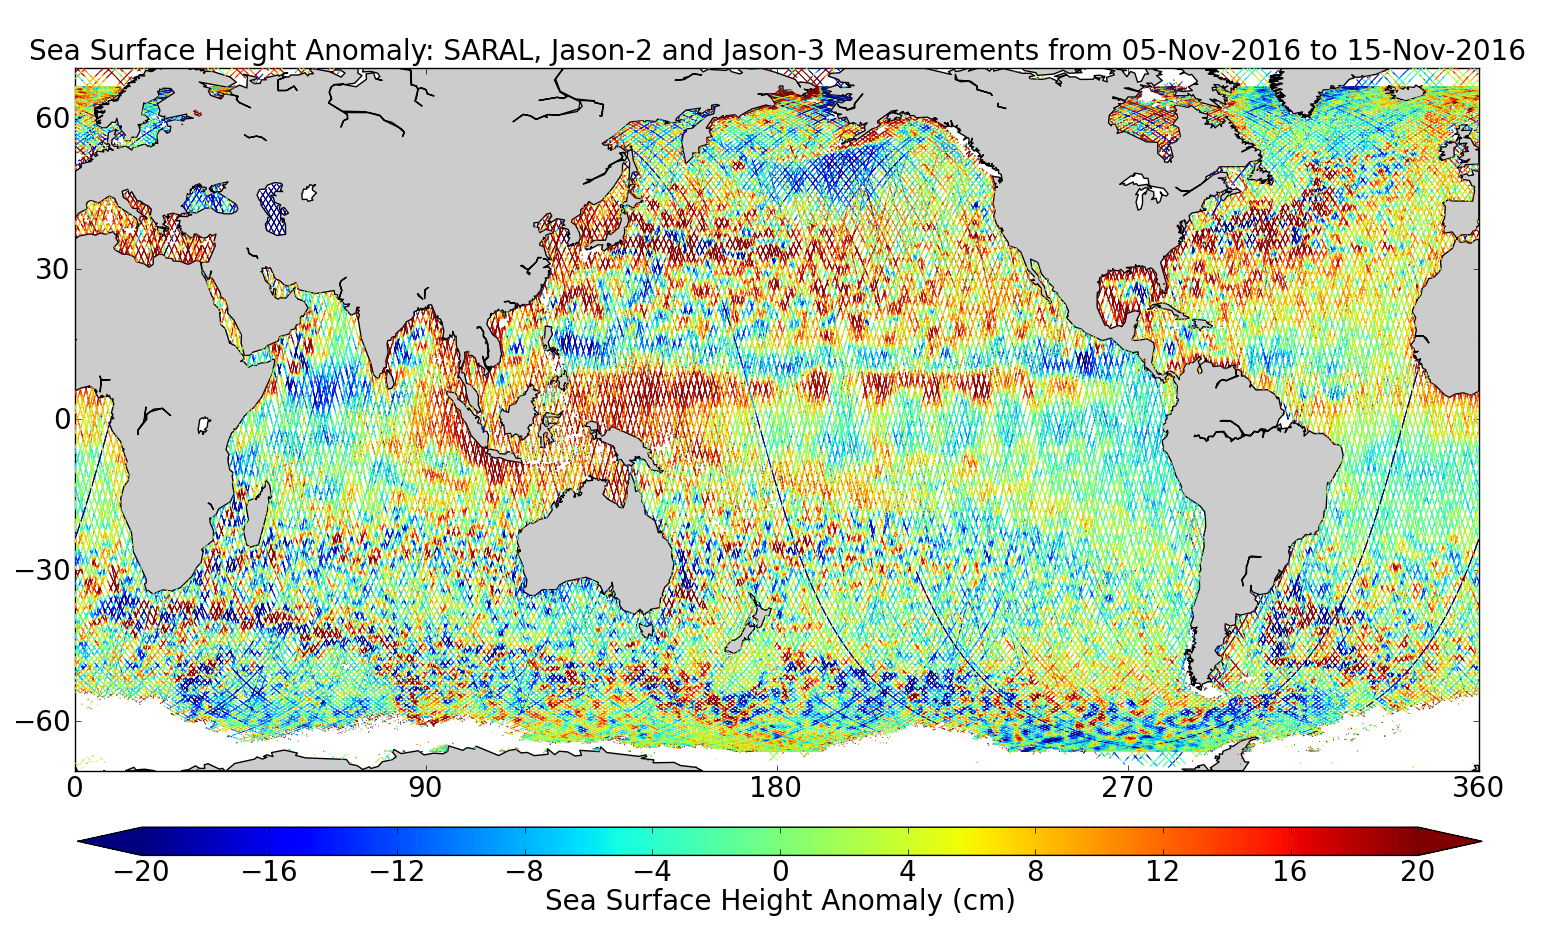 Sea Surface Height Anomaly: SARAL, Jason-2 and Jason-3 Measurements from 05-Nov-2016 to 15-Nov-2016